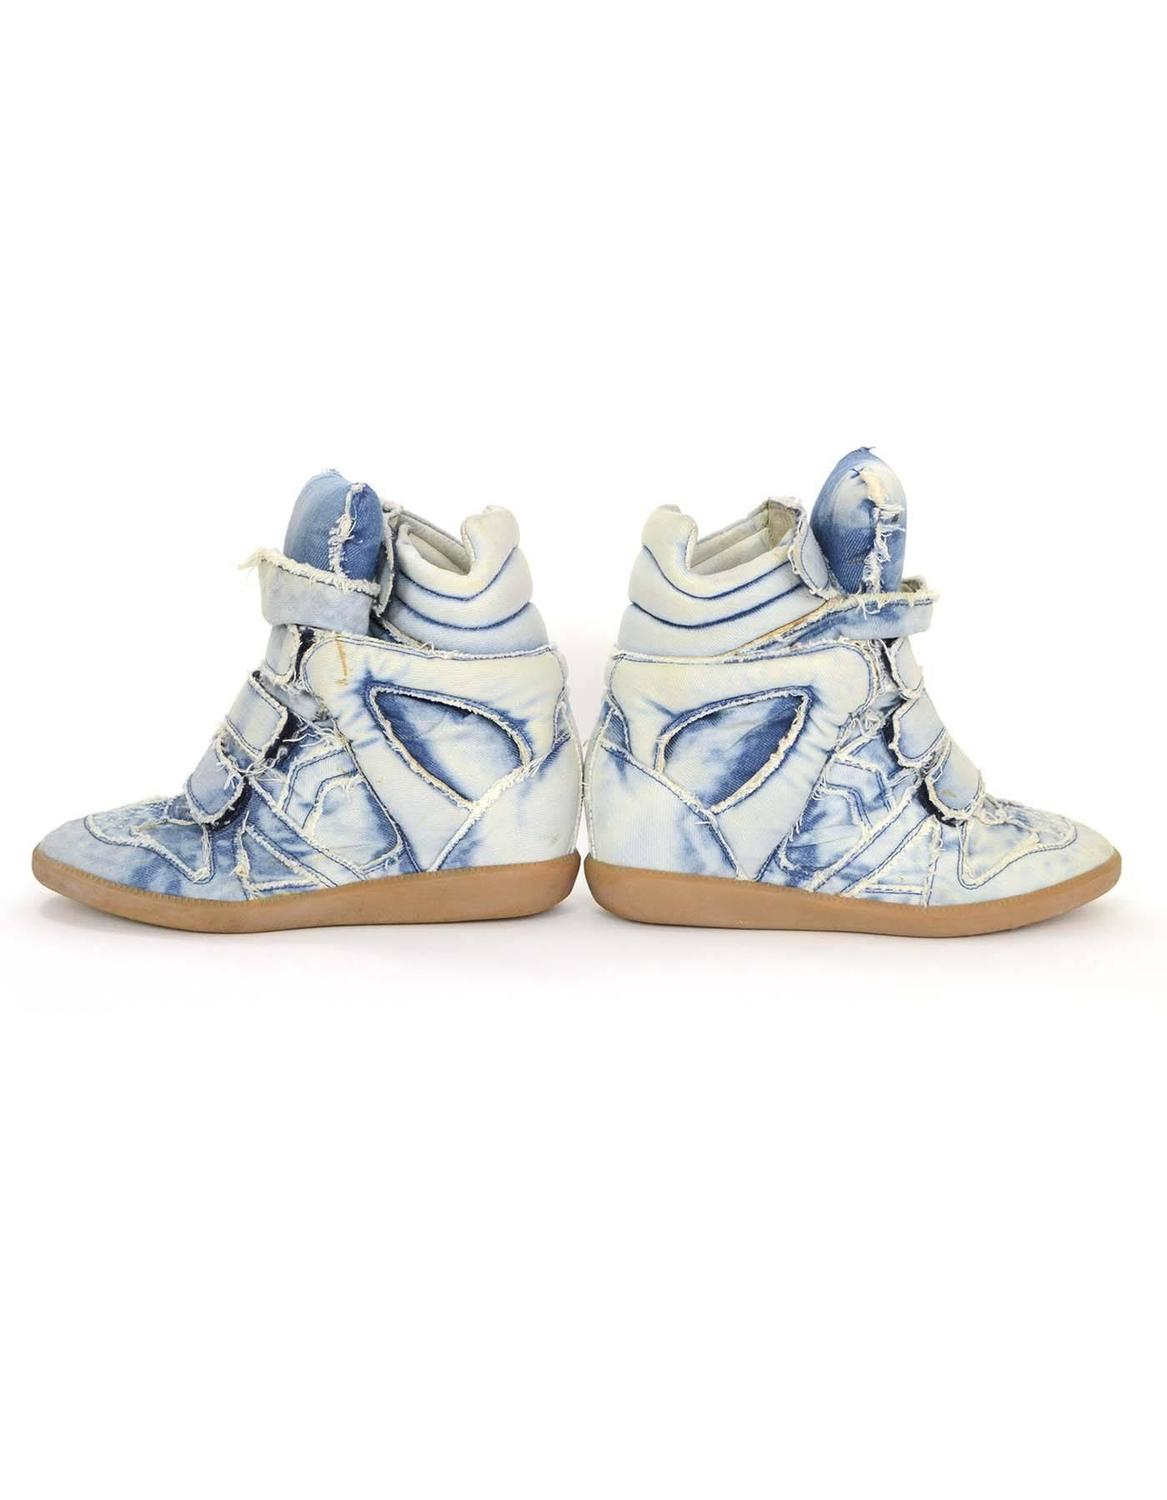 isabel marant blue denim bekket sneakers sz 37 for sale at 1stdibs. Black Bedroom Furniture Sets. Home Design Ideas